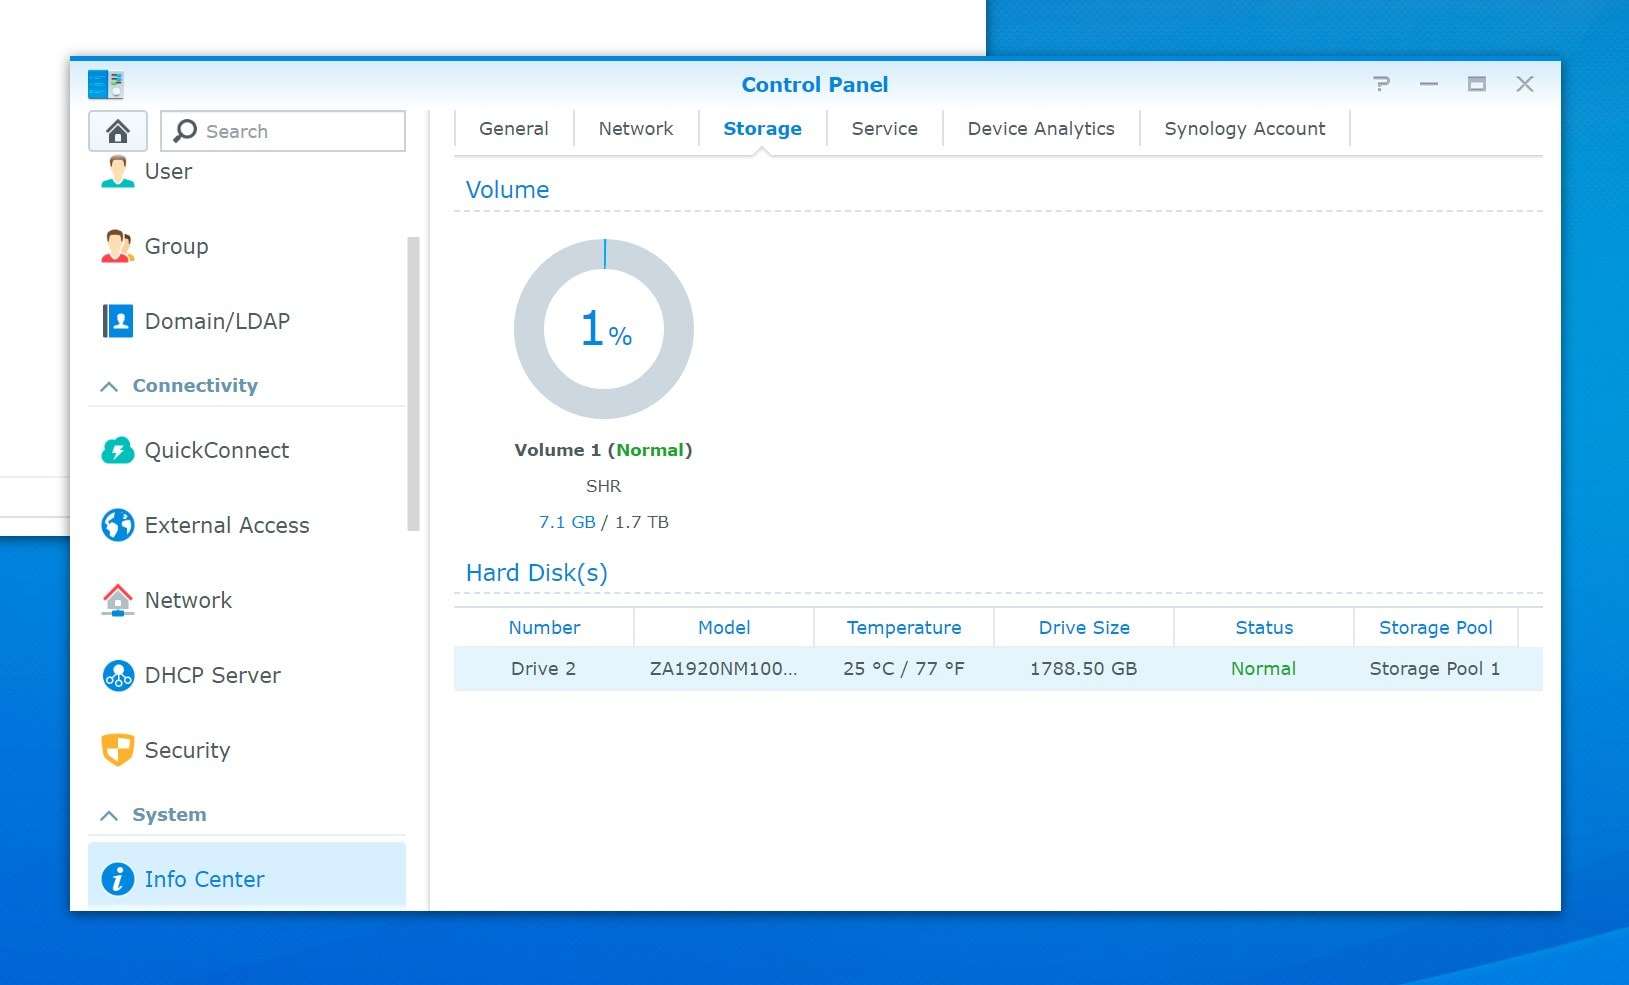 IronWolf in Synology Control Panel